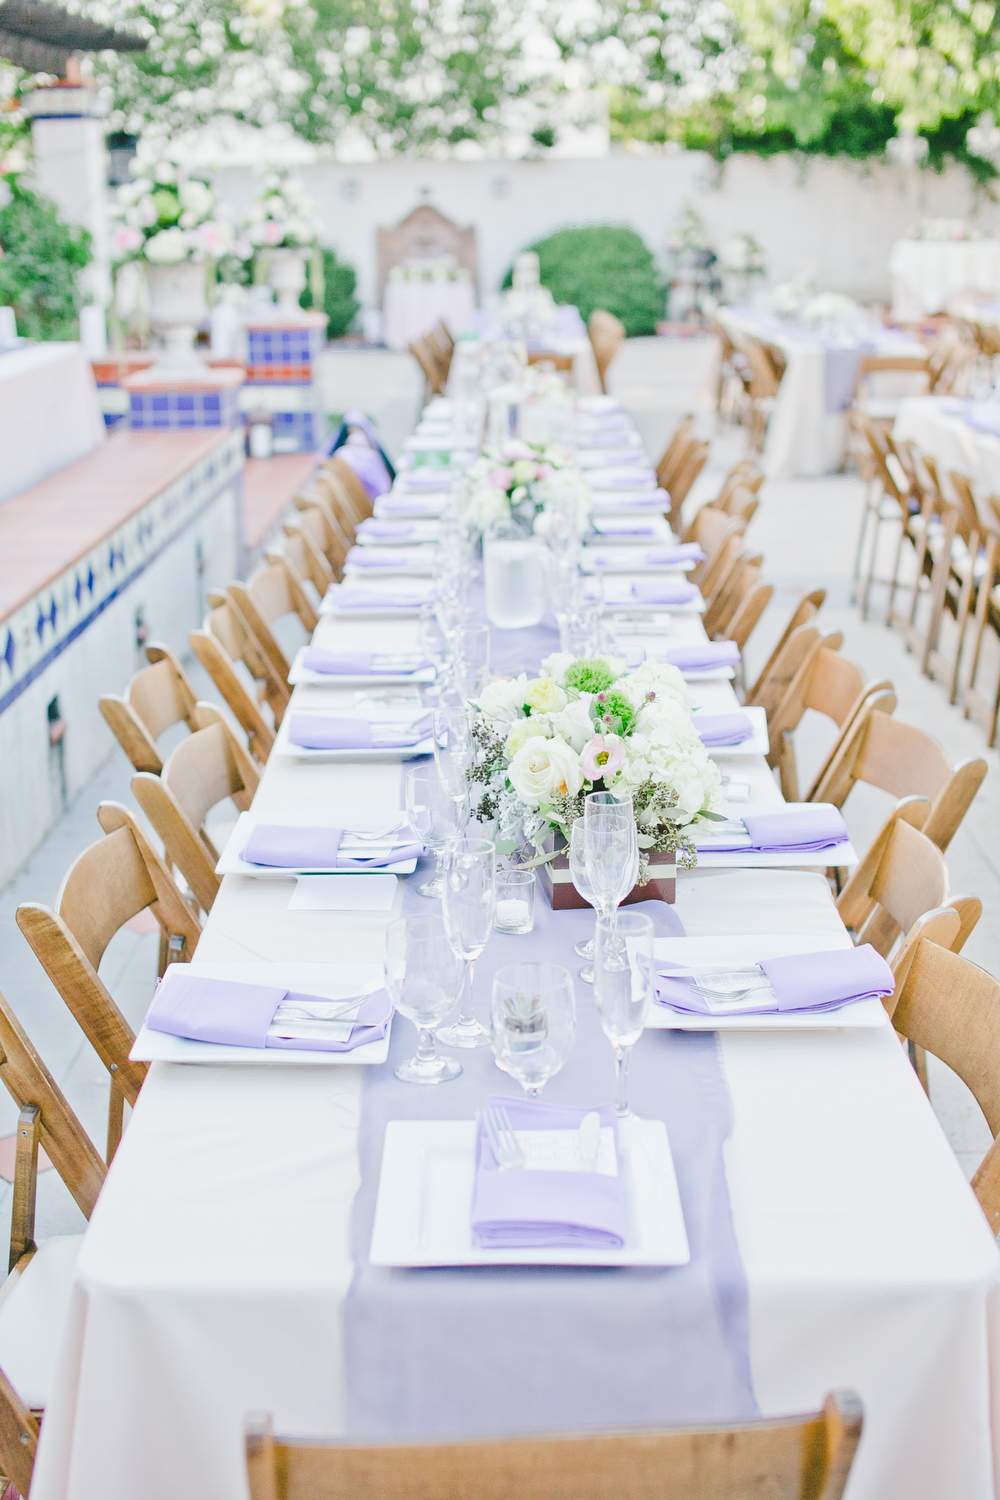 Other Services | Wedding Catering Services & Event Caterers